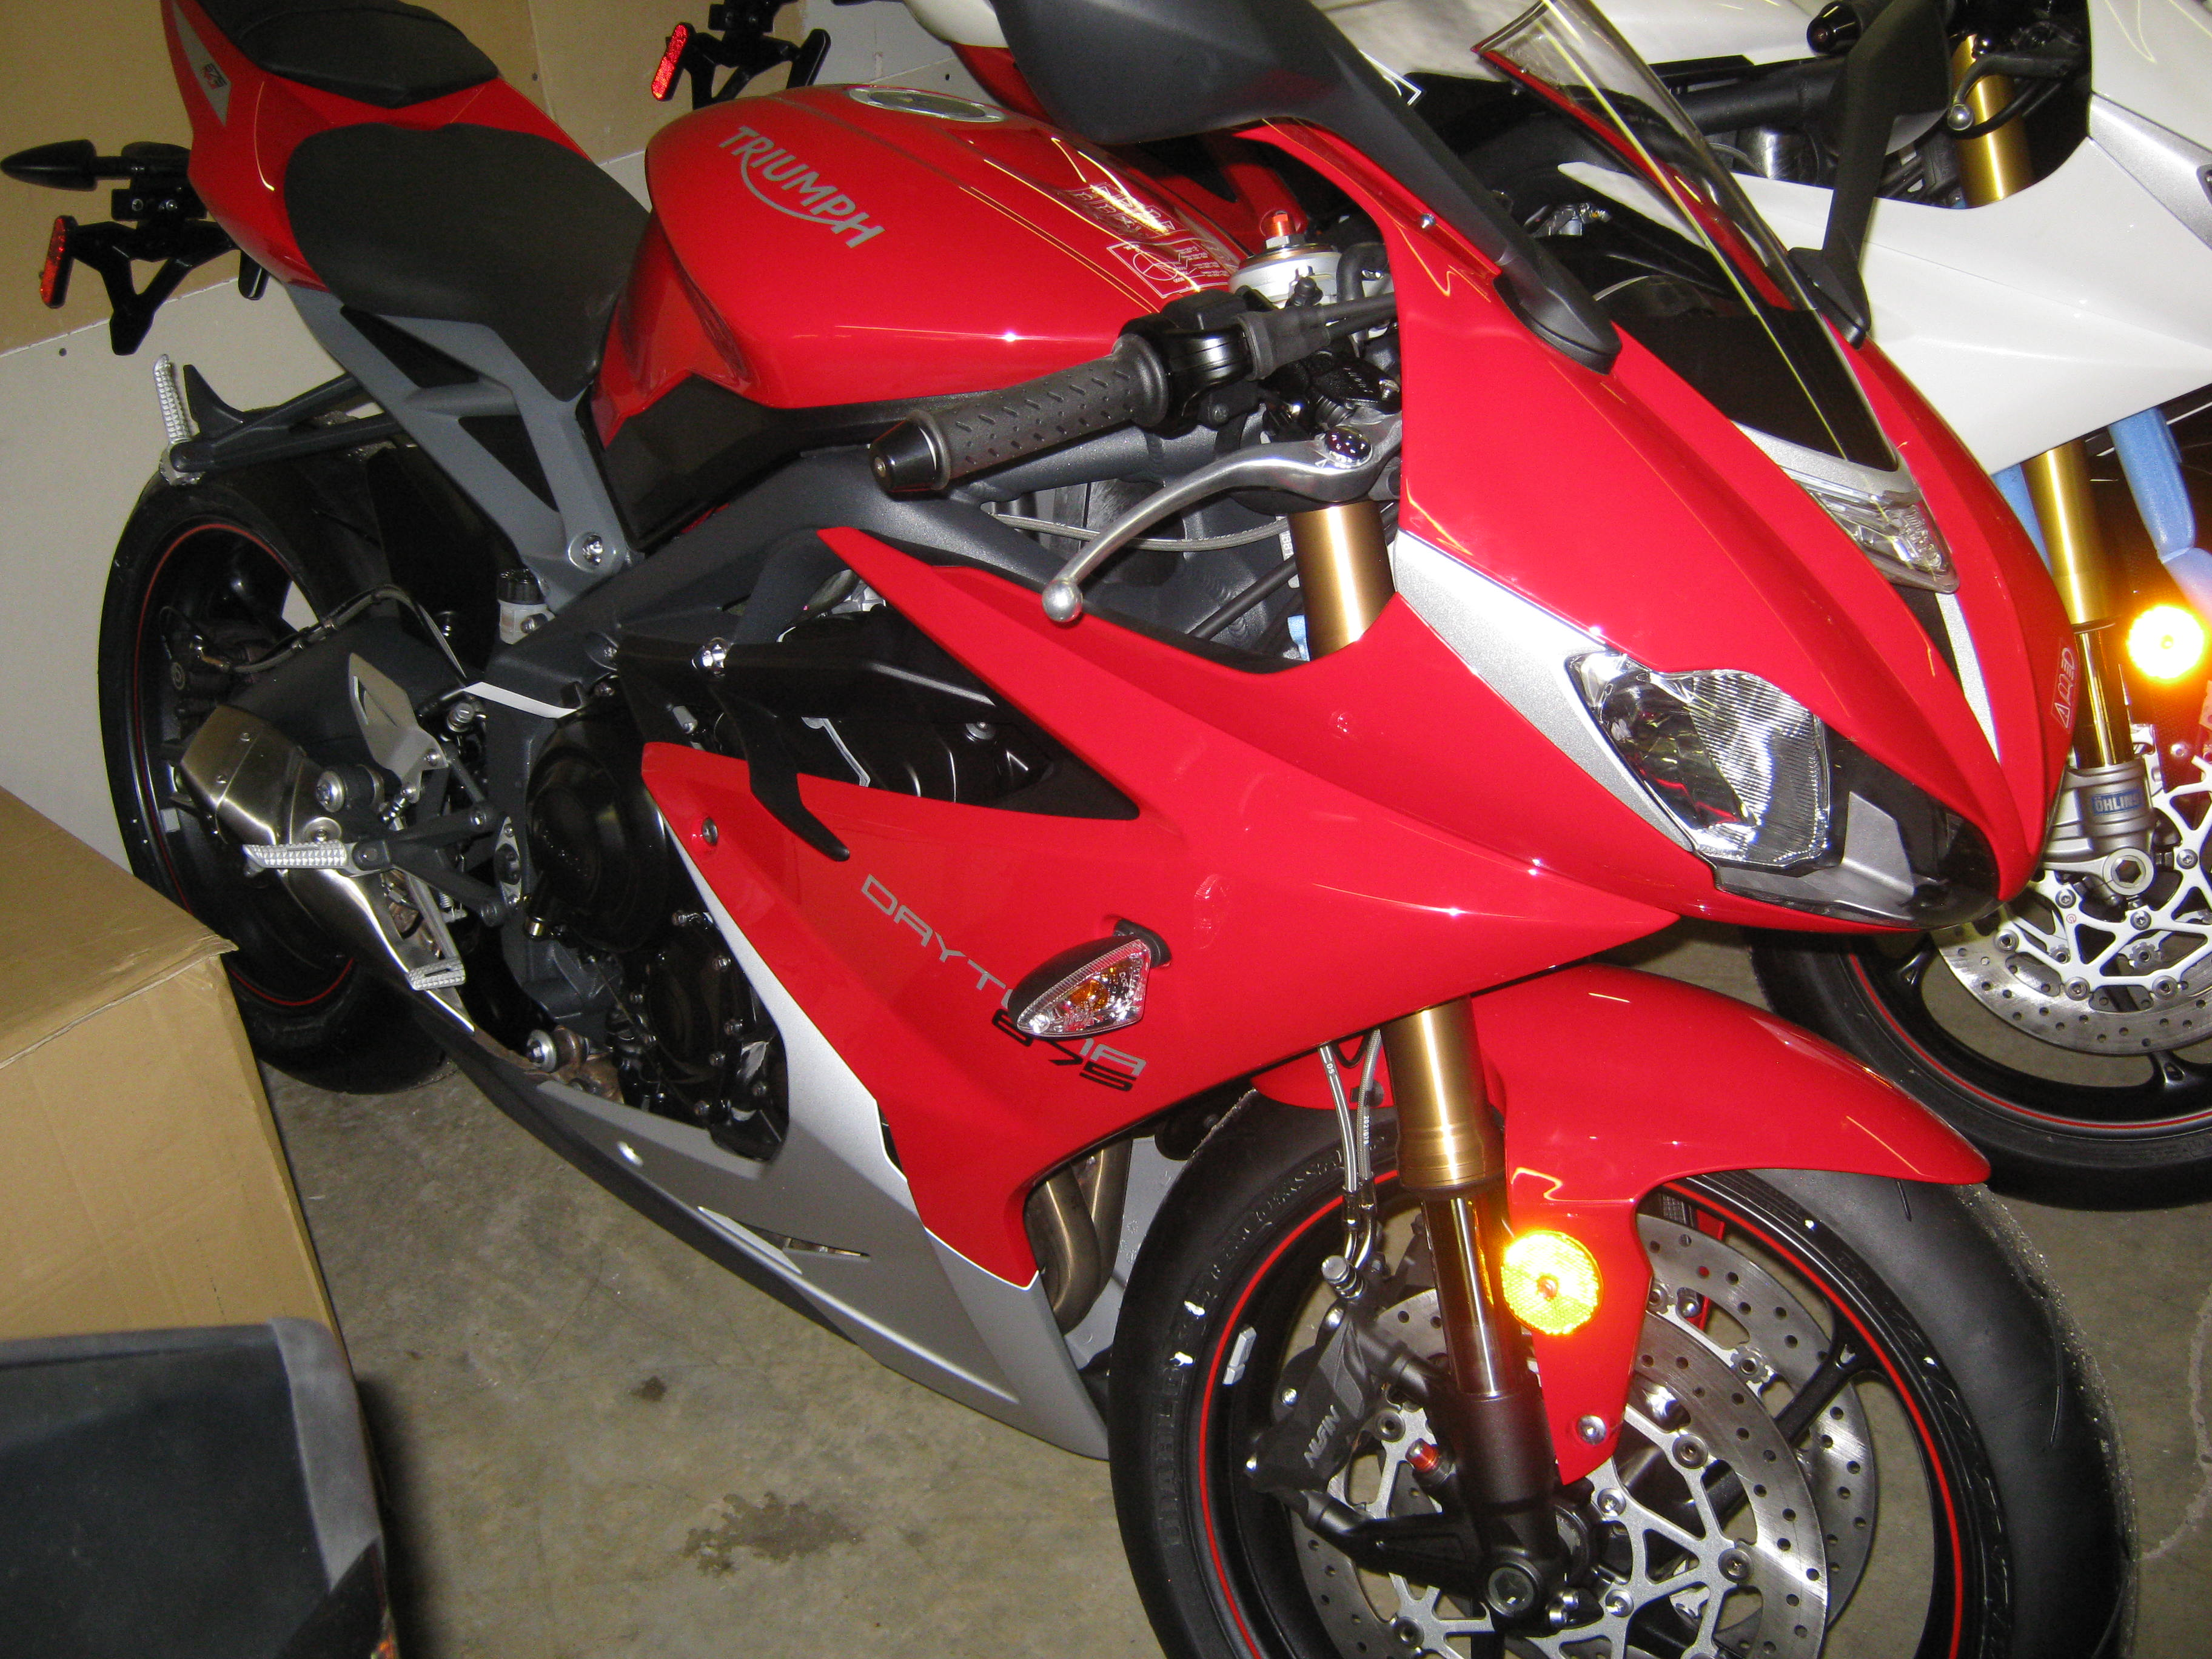 Triumph daytona 675 finance deals embroidery rn freebies daytona service repair and user owner manuals full download fandeluxe Choice Image